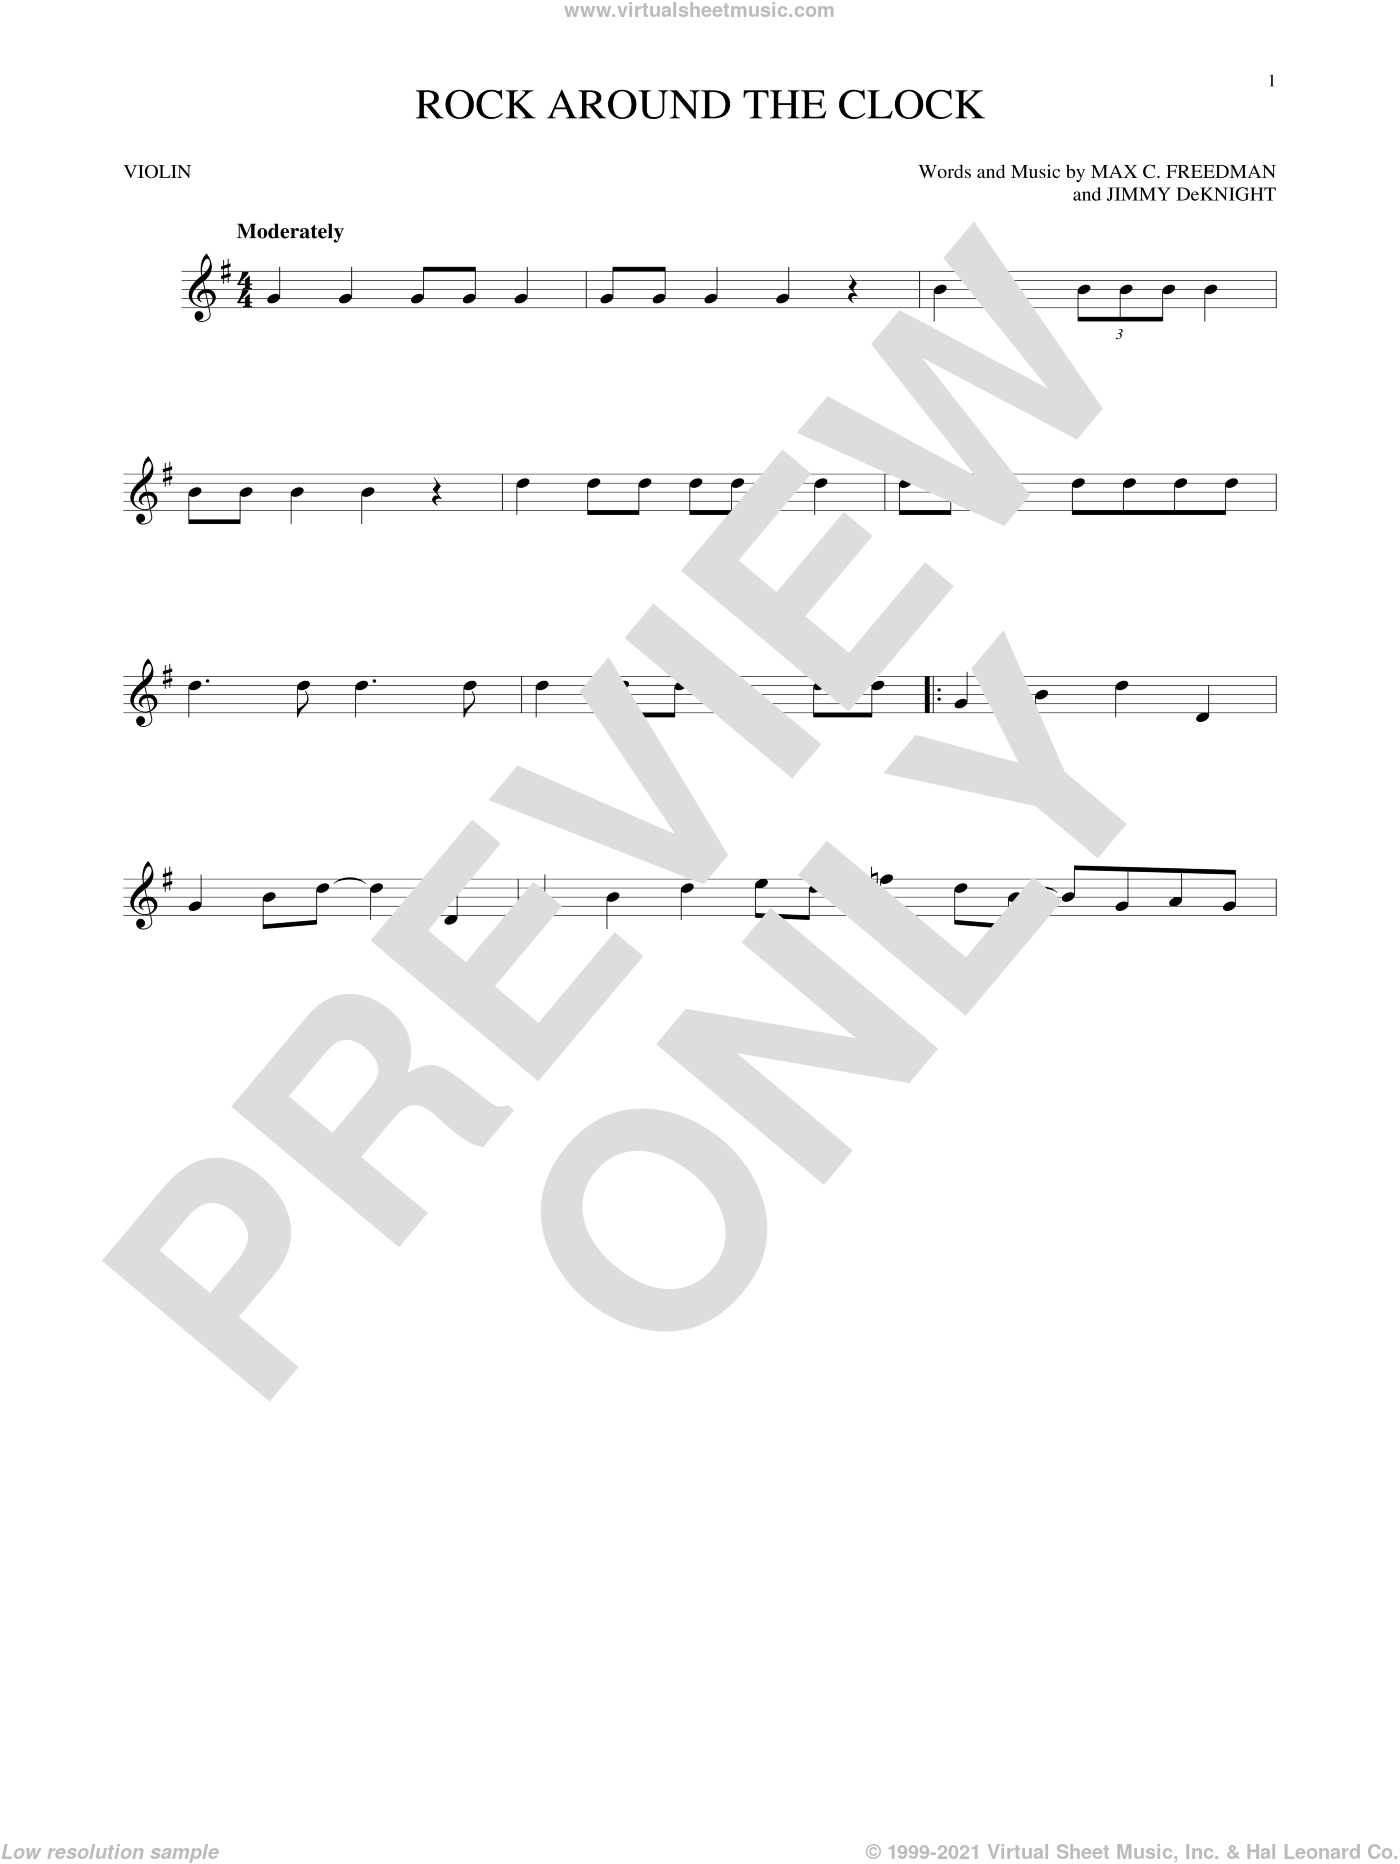 Rock Around The Clock sheet music for violin solo by Bill Haley & His Comets, Jimmy DeKnight and Max C. Freedman, intermediate skill level